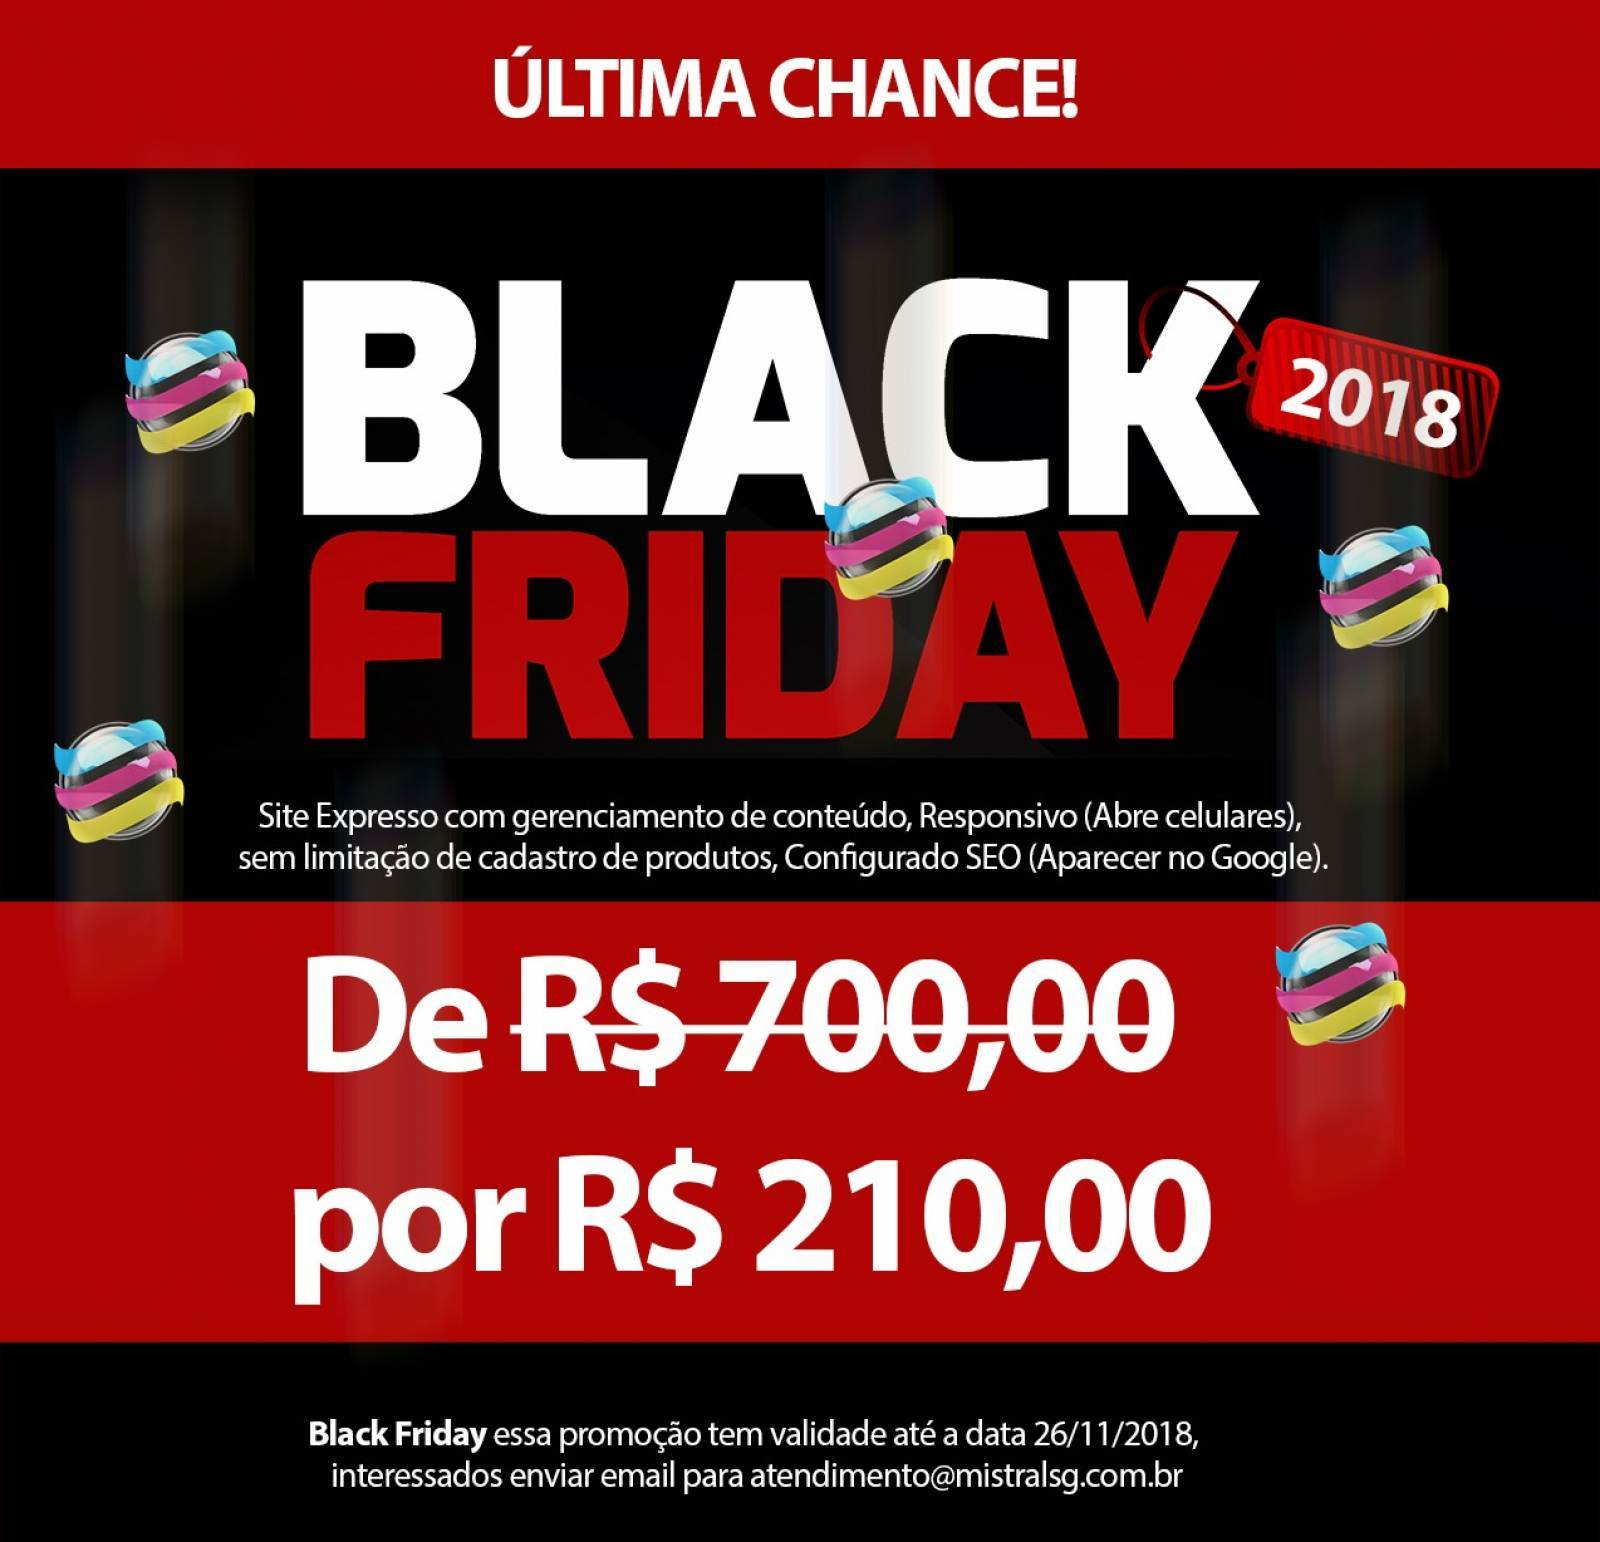 ÚLTIMA CHANCE BLACK FRIDAY